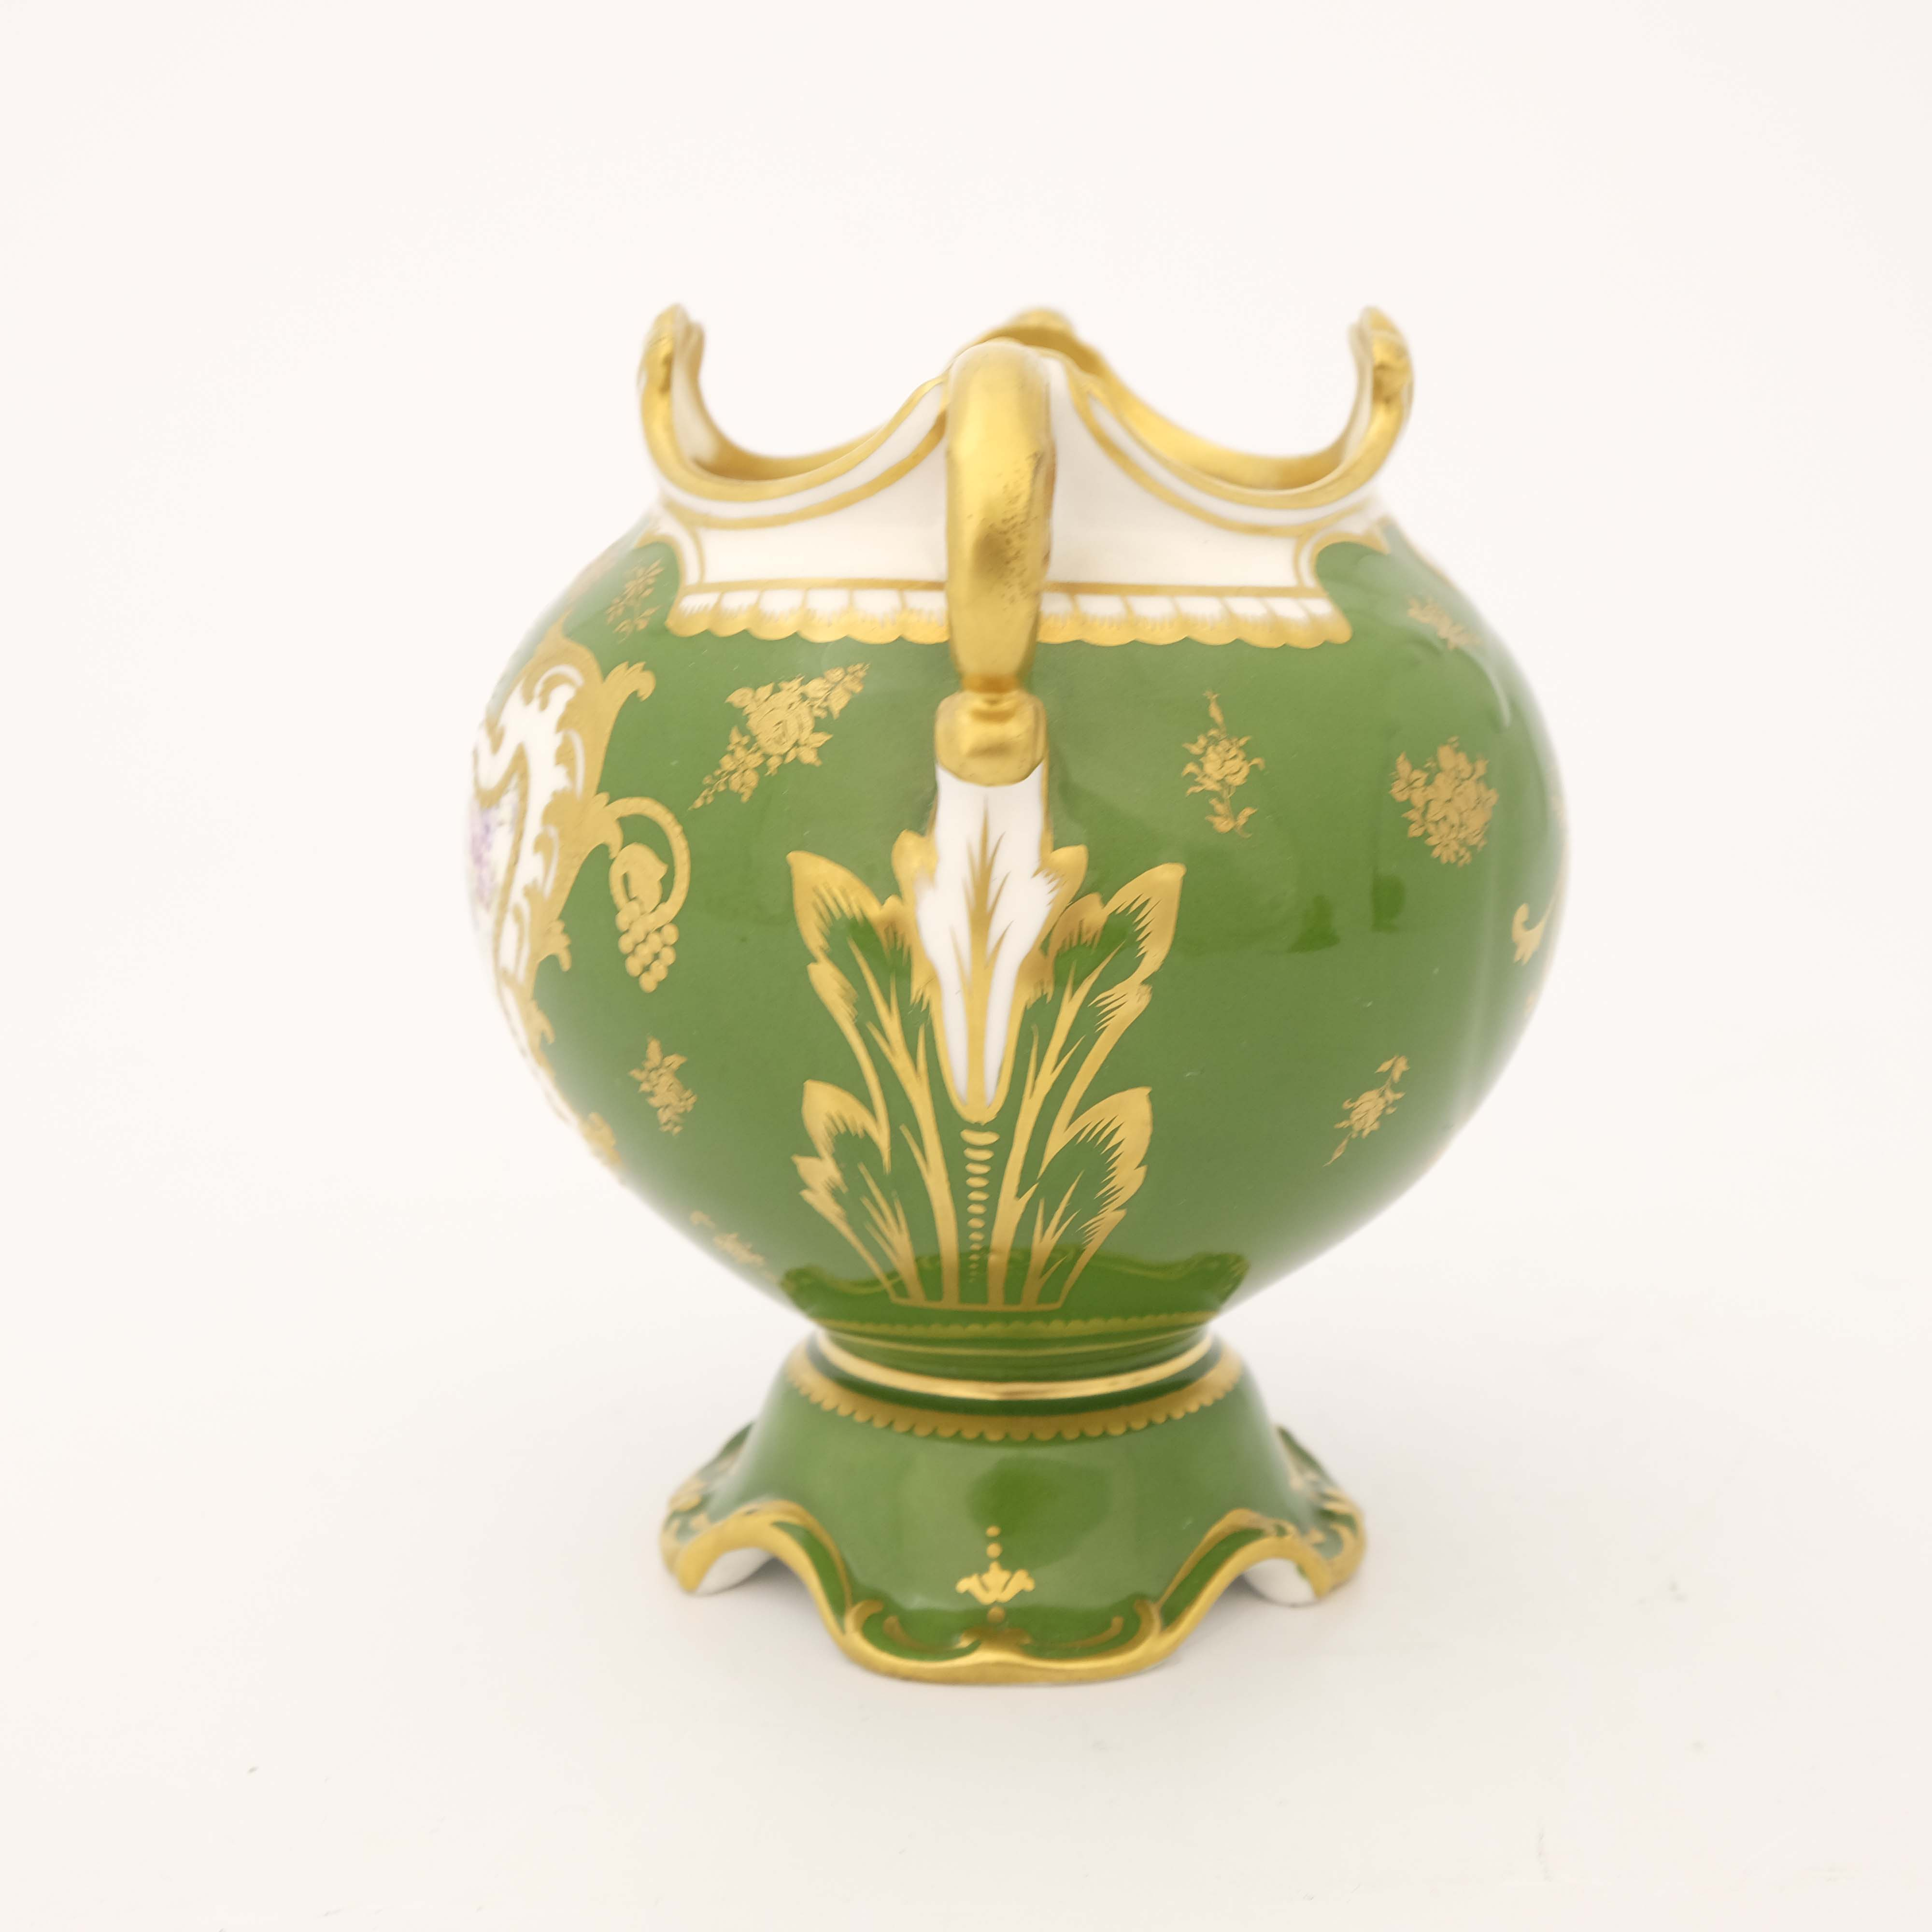 Edwin Wood for Royal Doulton, a floral painted twin handled vase - Image 4 of 7